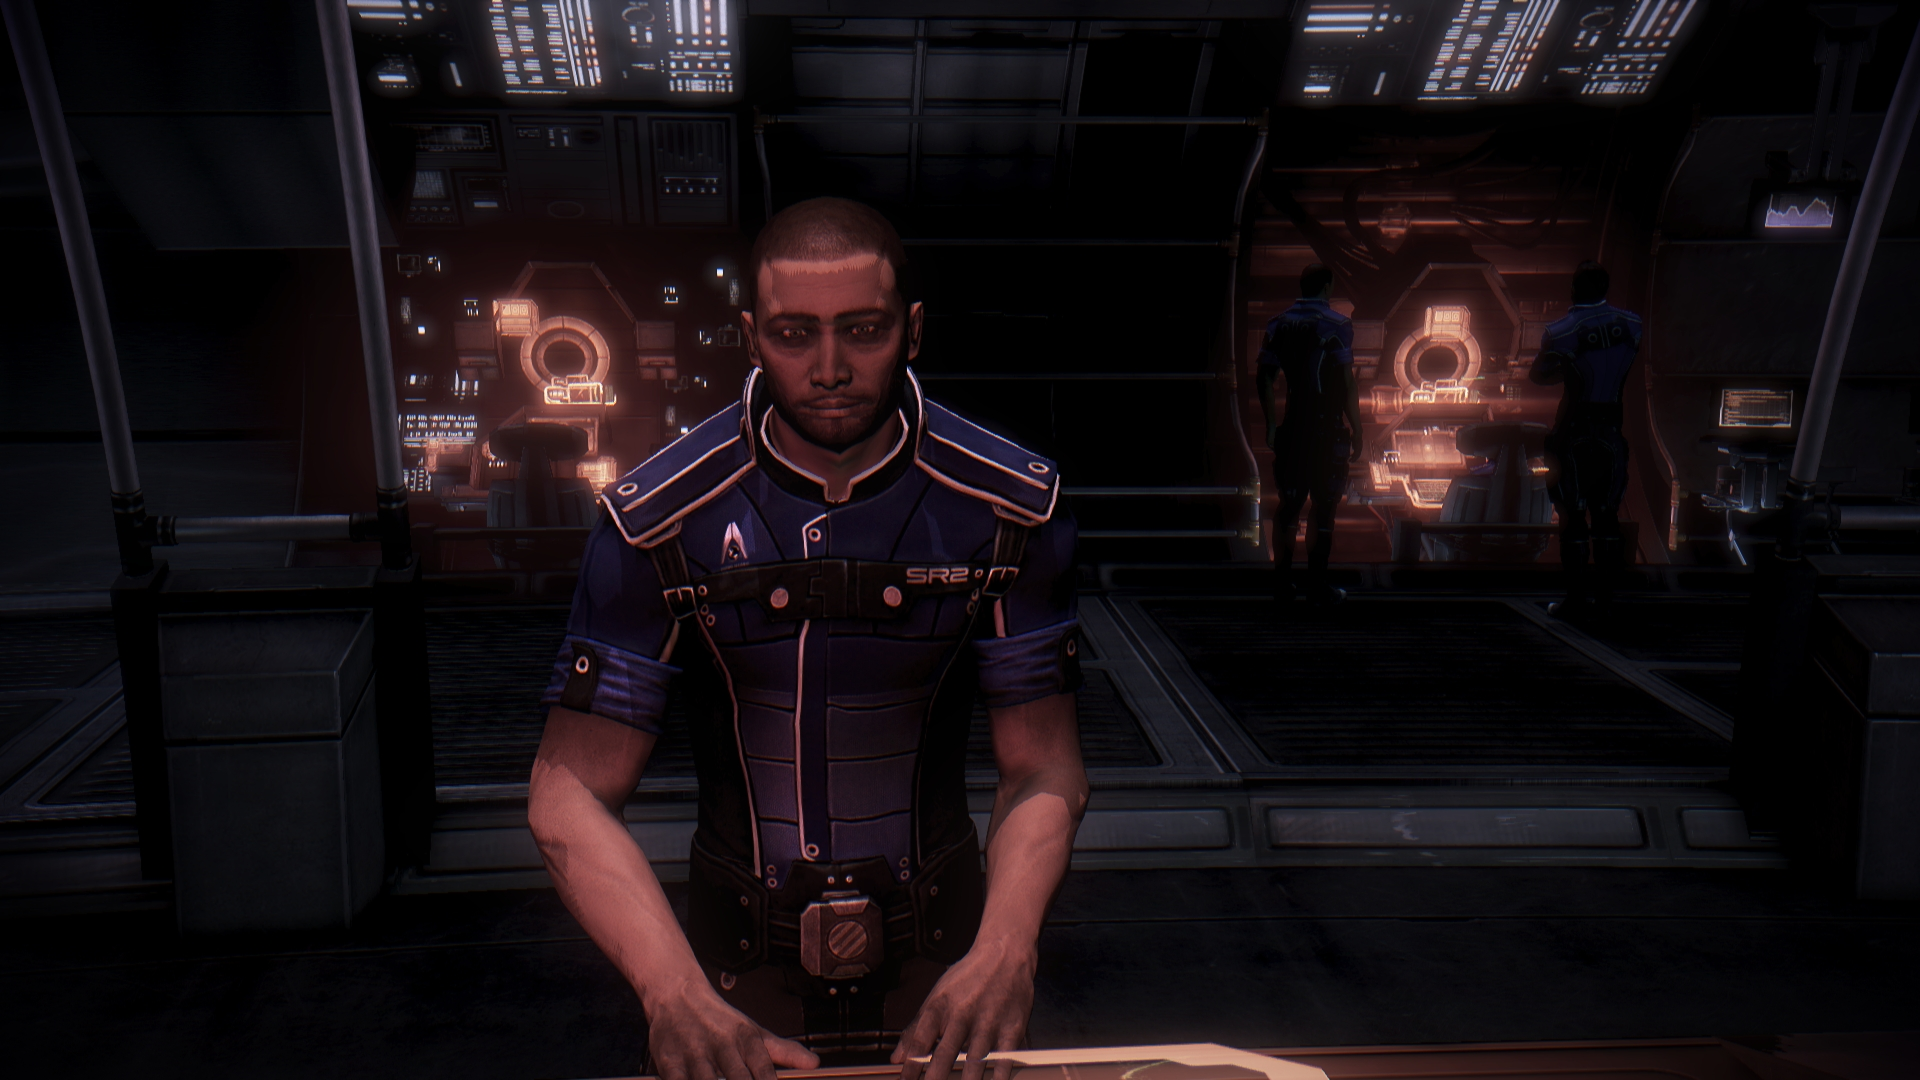 Normandy Crew High-Res Replacement Outfits At Mass Effect 3 Nexus - Mods And Community-7655